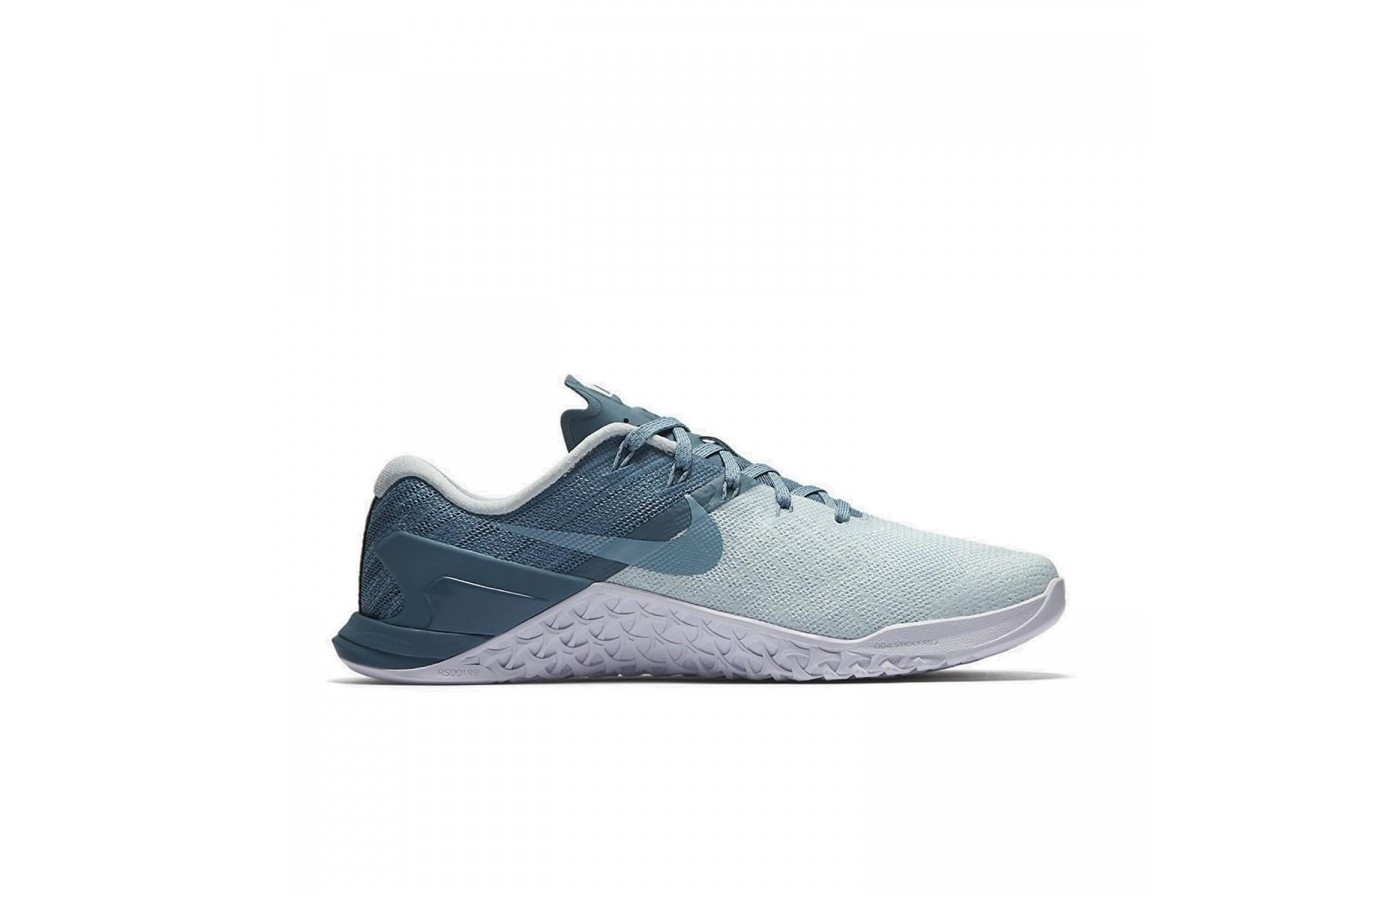 The Nike Metcon 3 features Flywire upper technology